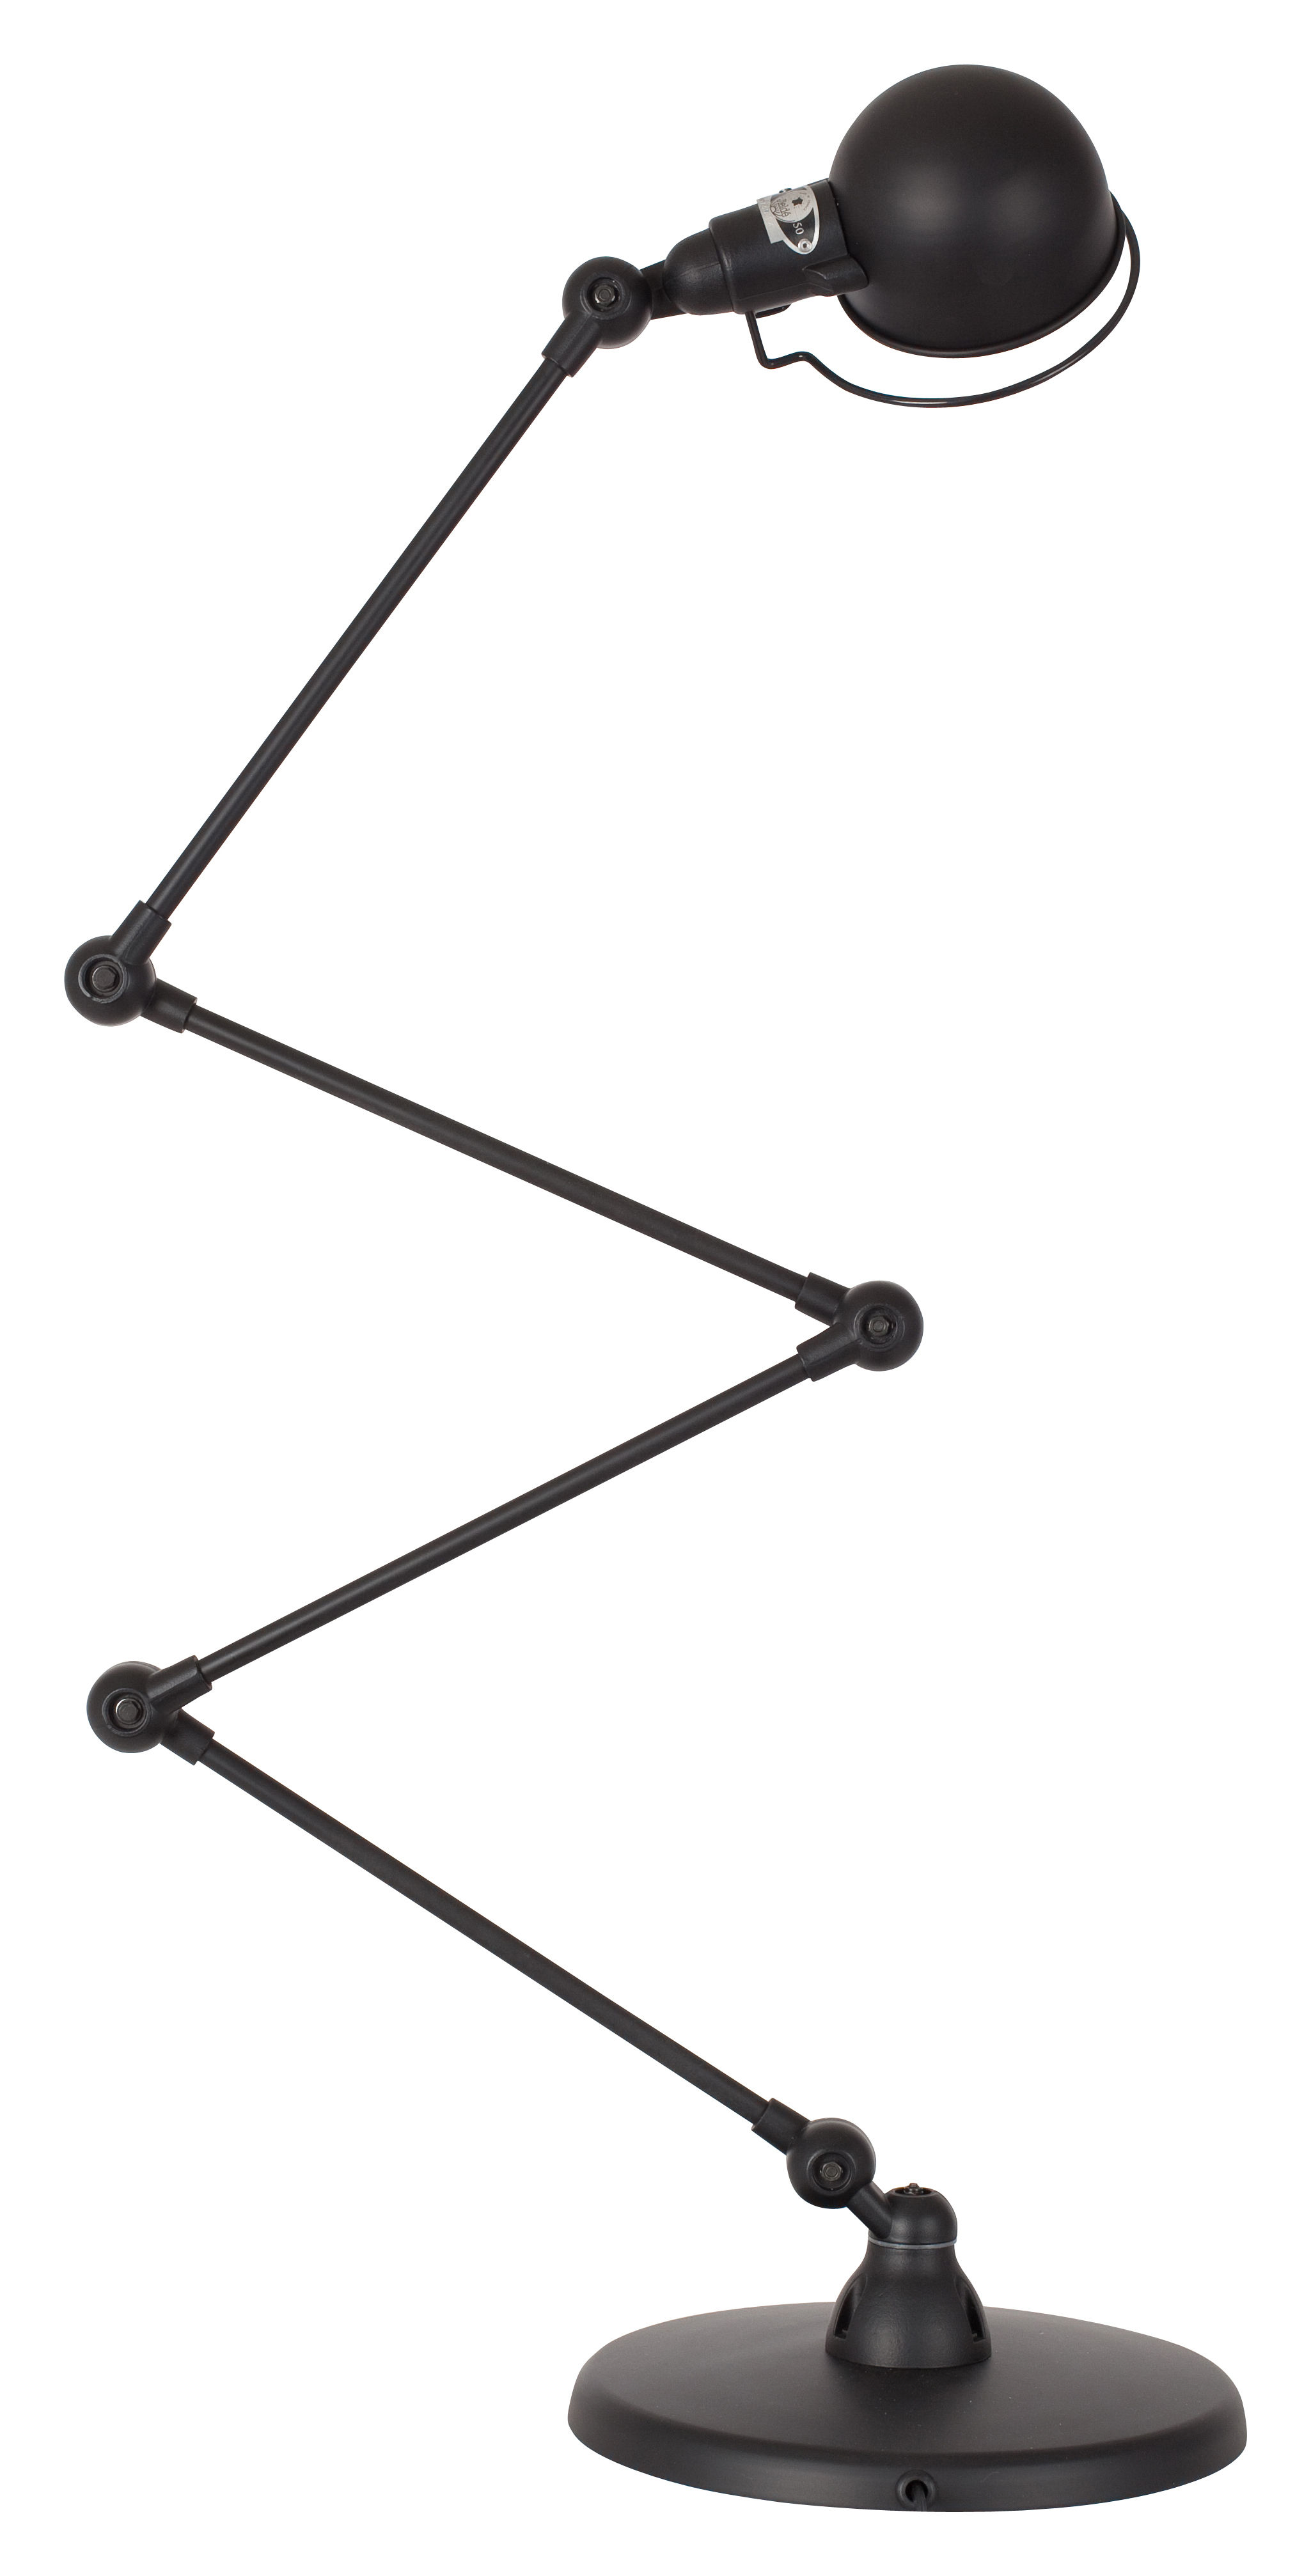 Lighting - Floor lamps - Signal Zigzag Floor lamp - 4 arms - H max 120 cm by Jieldé - Matt Black - Stainless steel